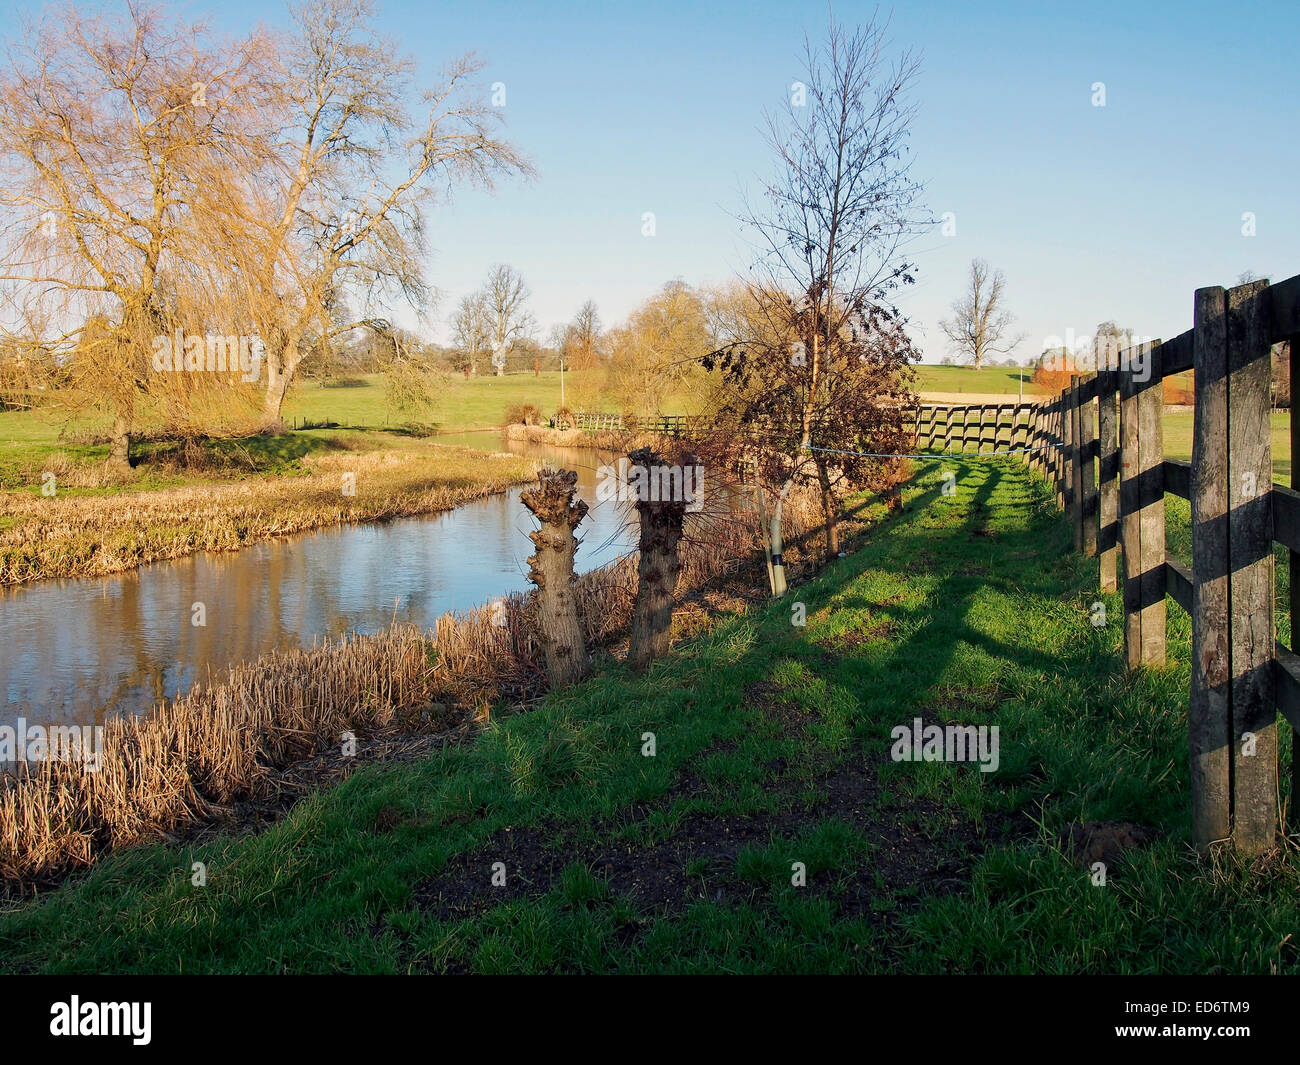 A bright & sunny winter scene on the River Colne between Colne St Aldwyns and Hatherop in Gloucestershire,, - Stock Image